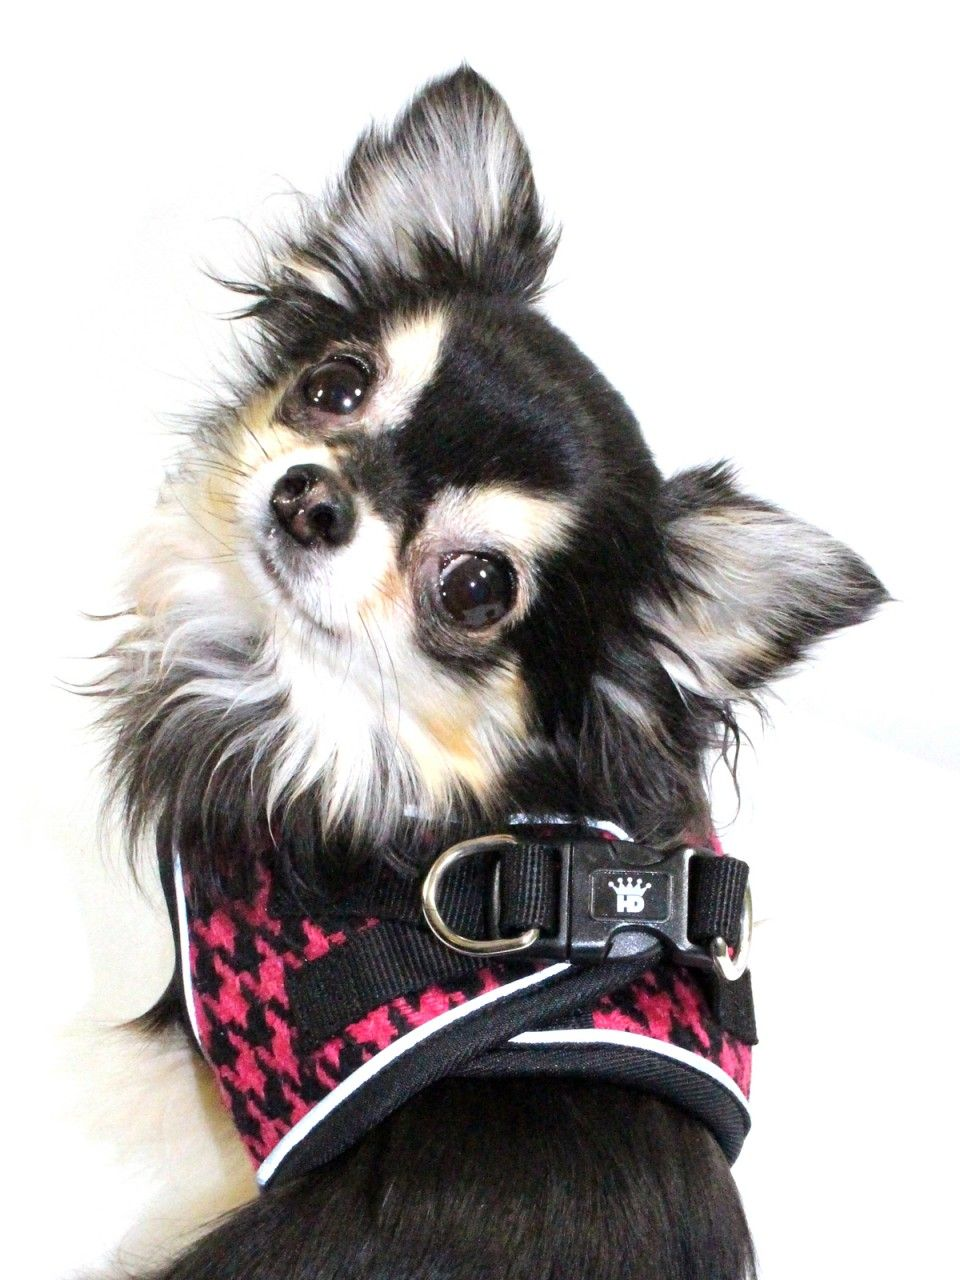 Ez Reflective Houndstooth Harness Vest Pink Black No Choke